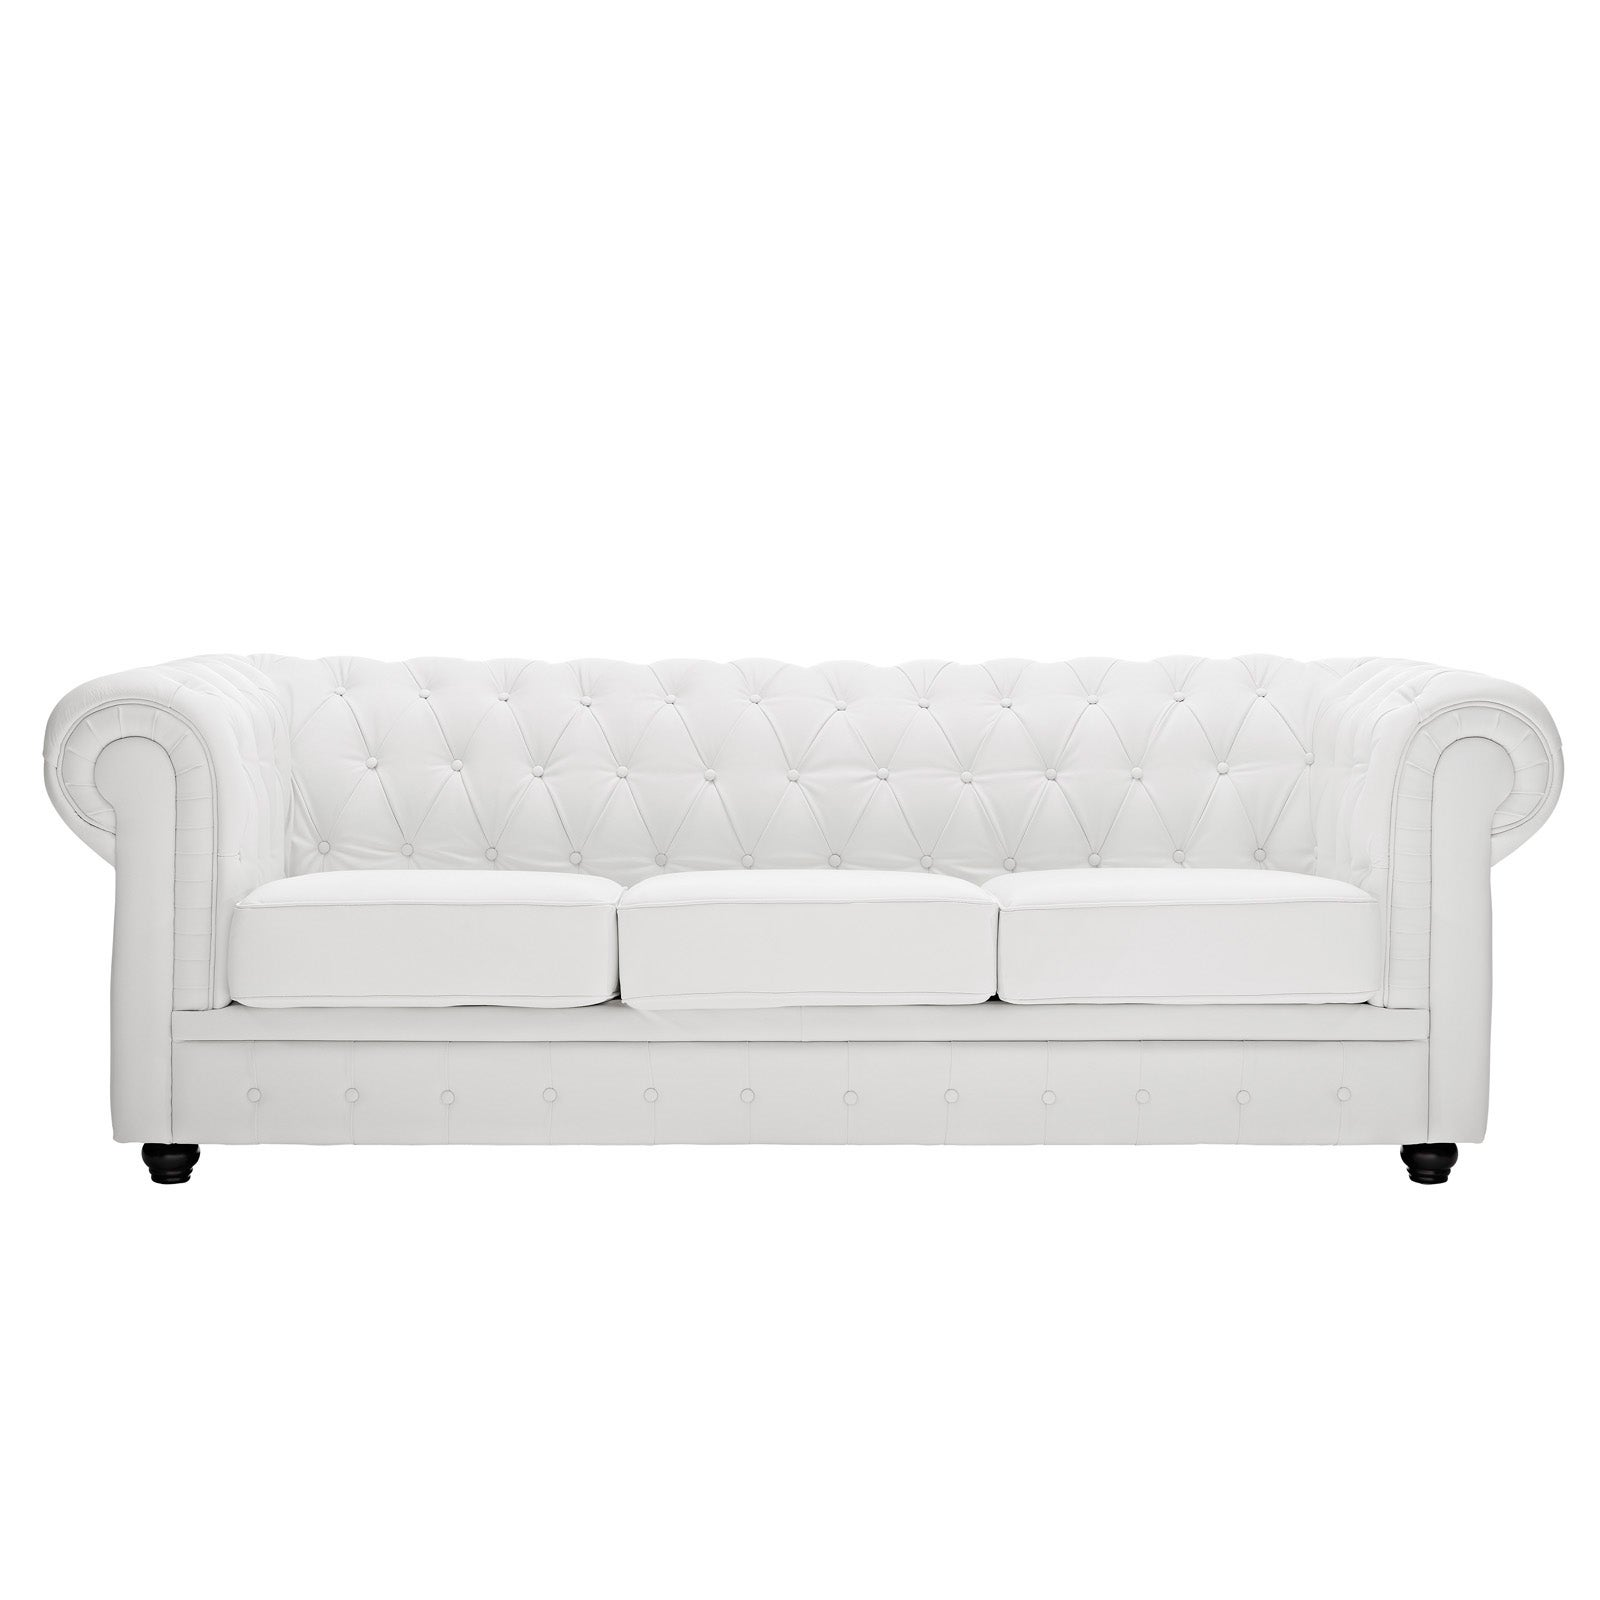 Shop White Leather Chesterfield Sofa   Free Shipping Today   Overstock.com    6670886